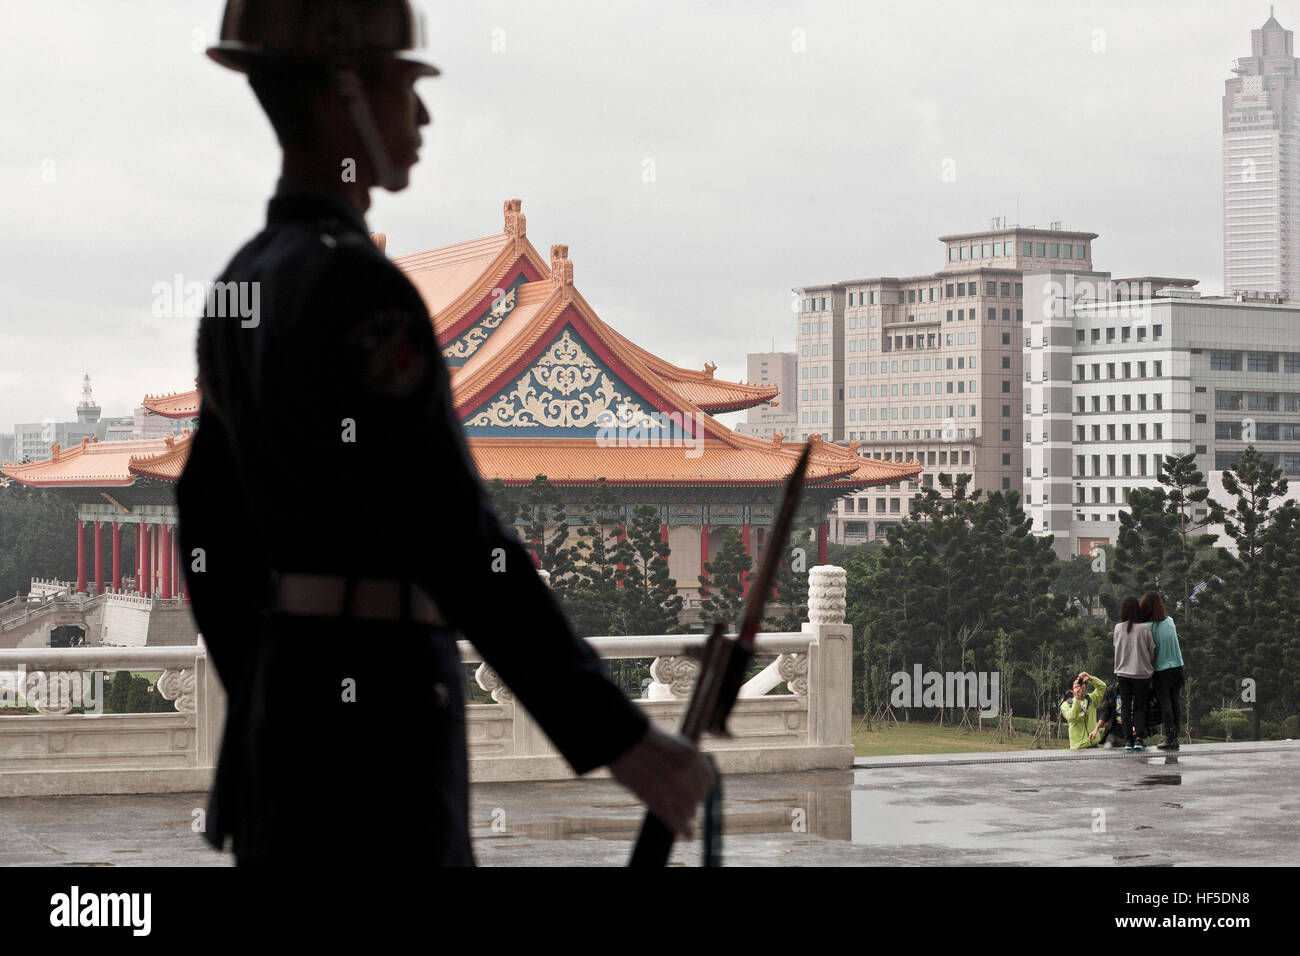 A soldier guards the Mausoleum of the former president general Tchiang Kai Shek in Taipei, Taiwan capital. - Stock Image